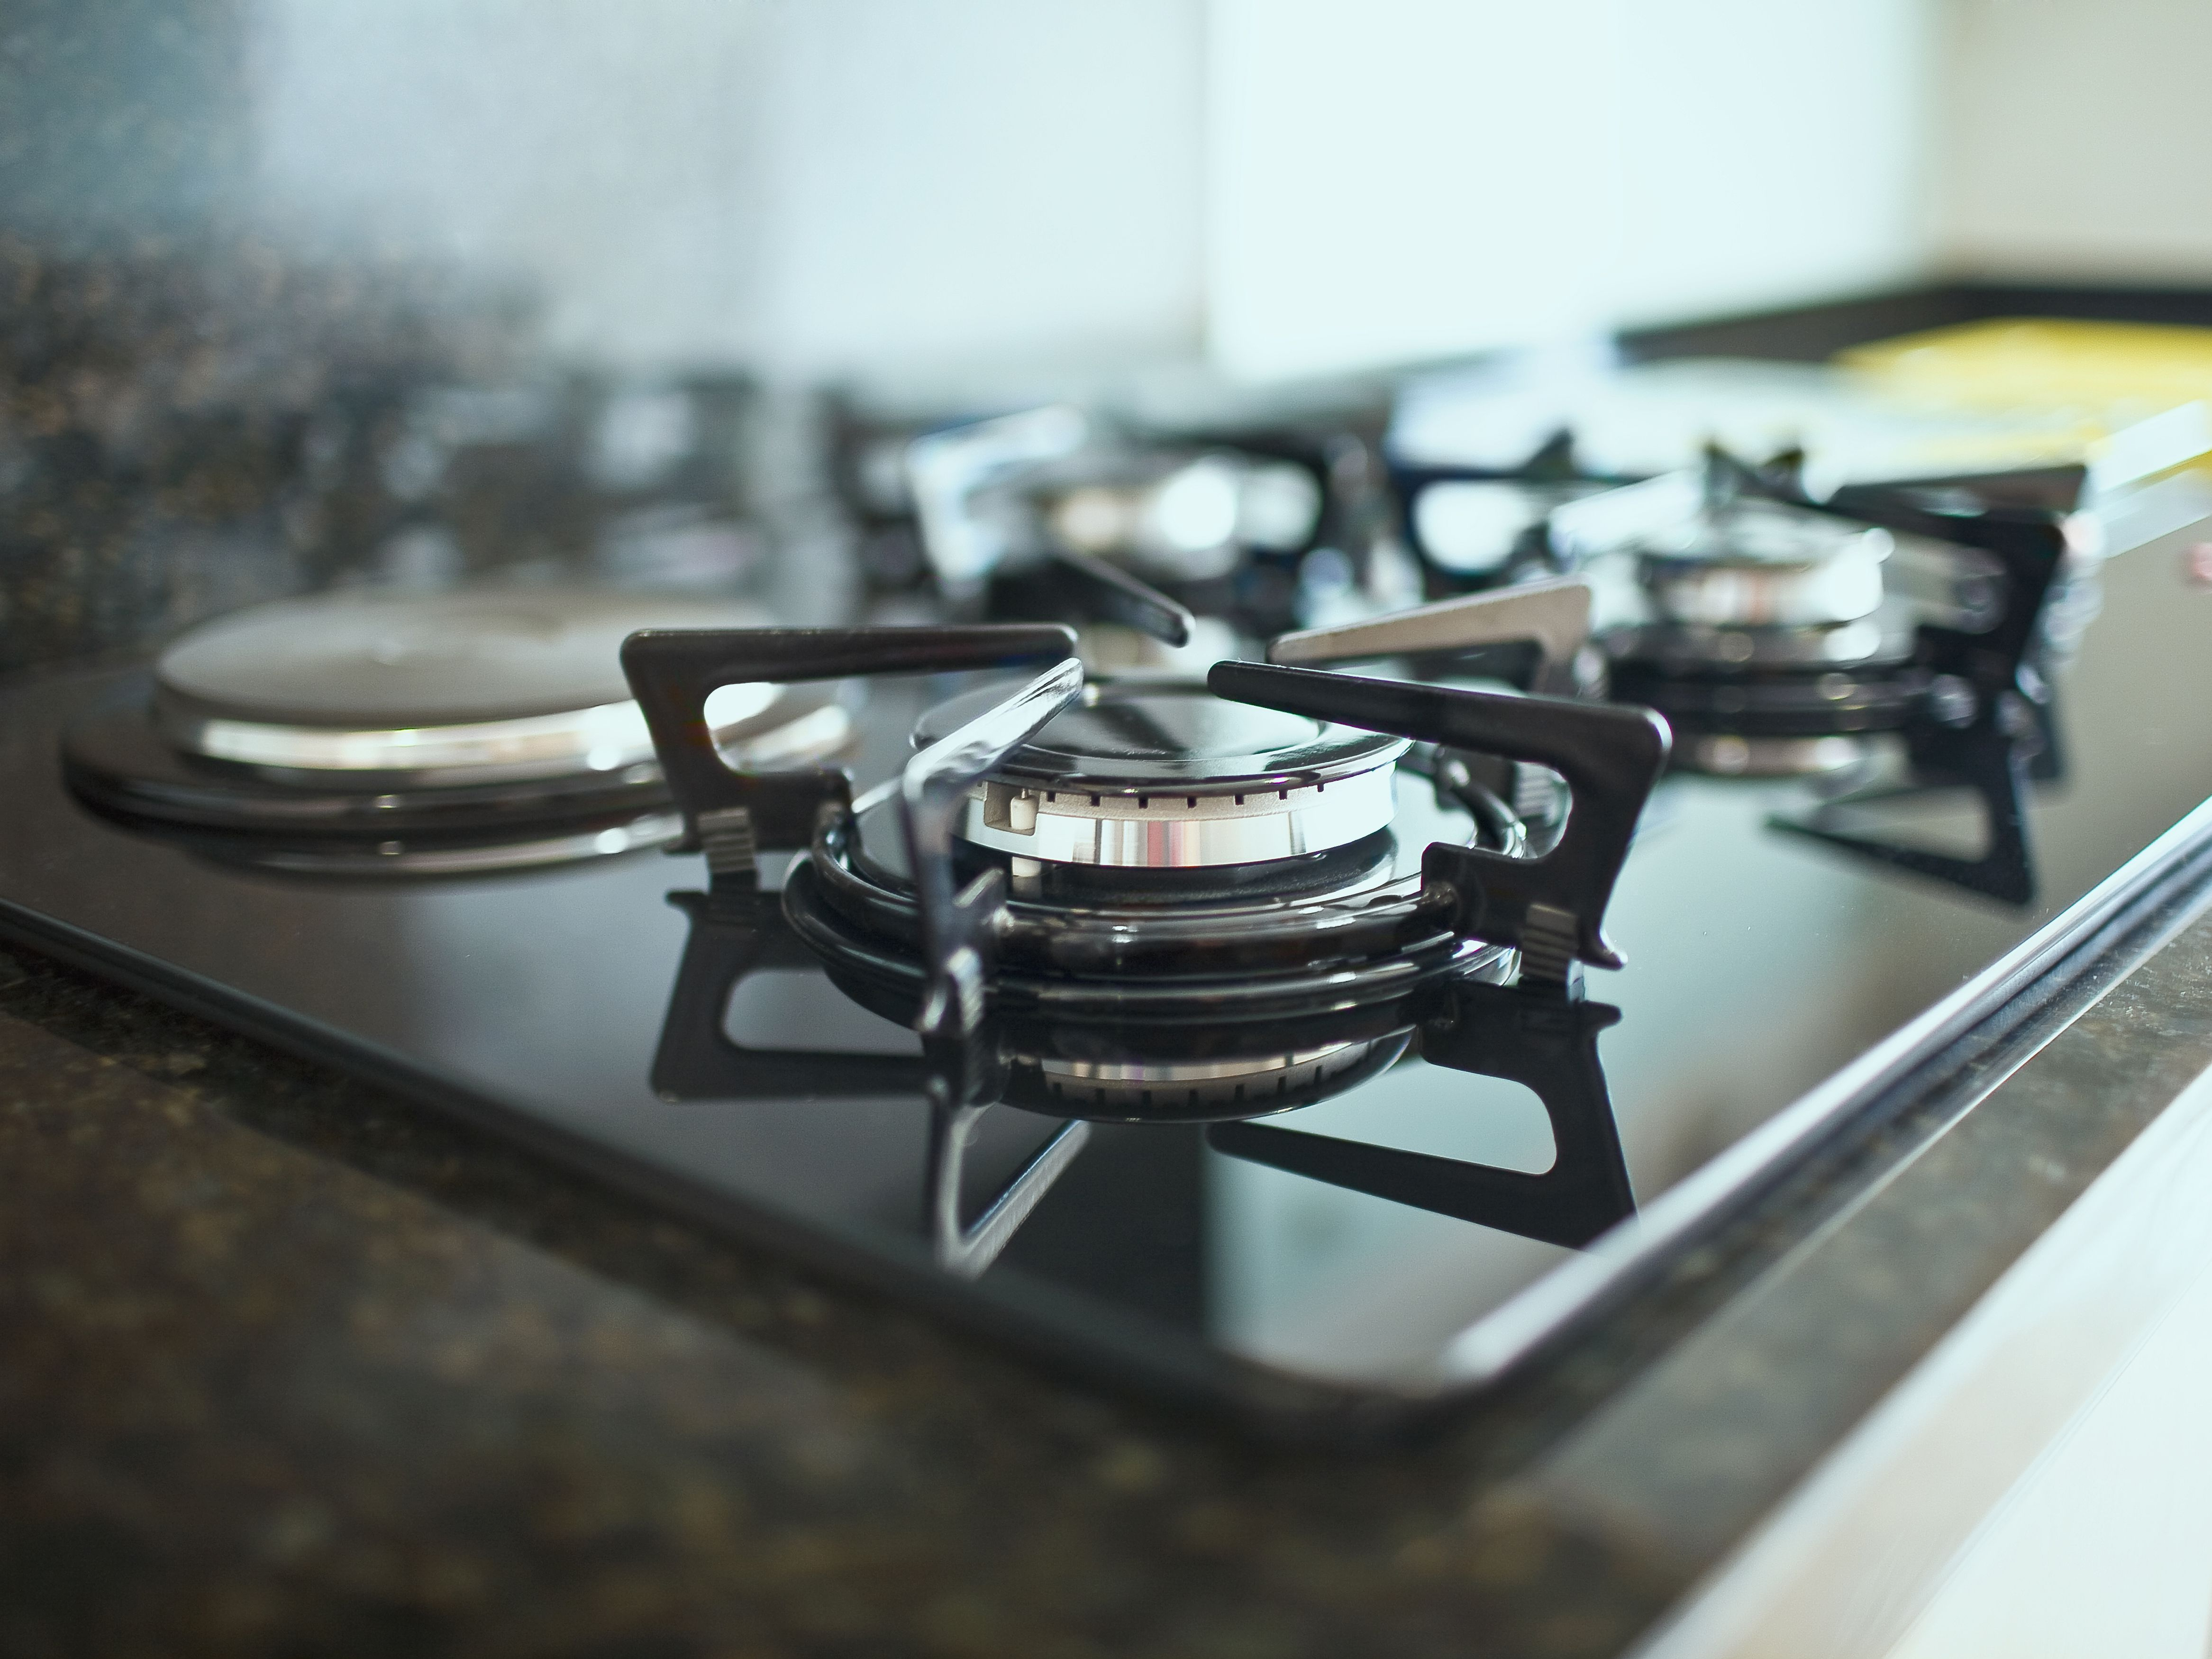 How to Turn Off the Gas to a Stove at the Shutoff Valve